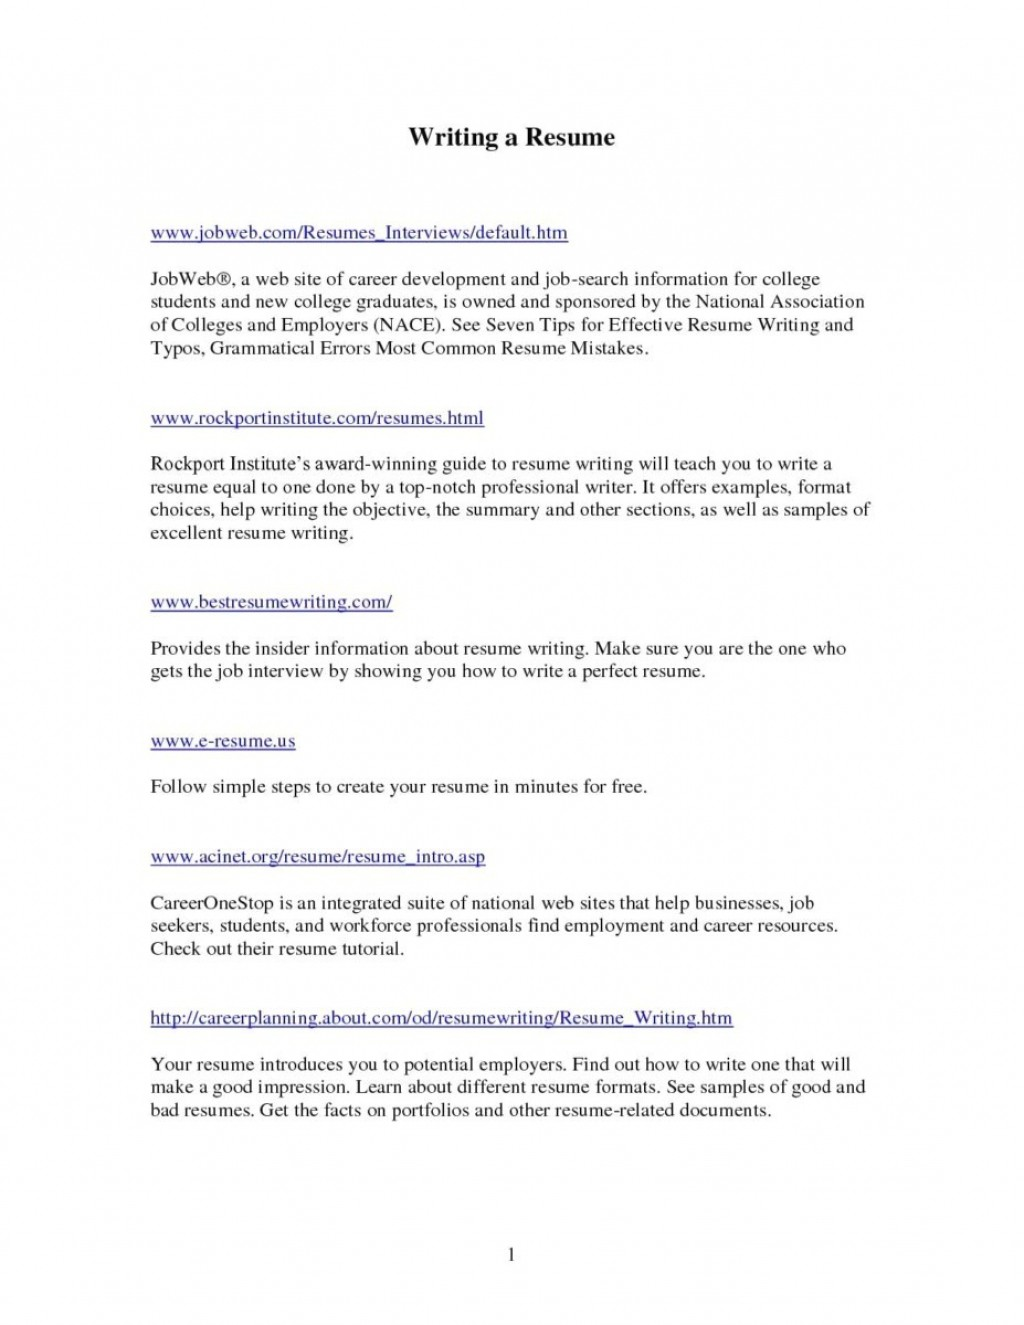 014 Research Paper Resume Writing Service Reviews Format Best Writers Inspirational Help Professional Of Free Services How Write Outstanding Outline To An For A Mla Ppt College Large